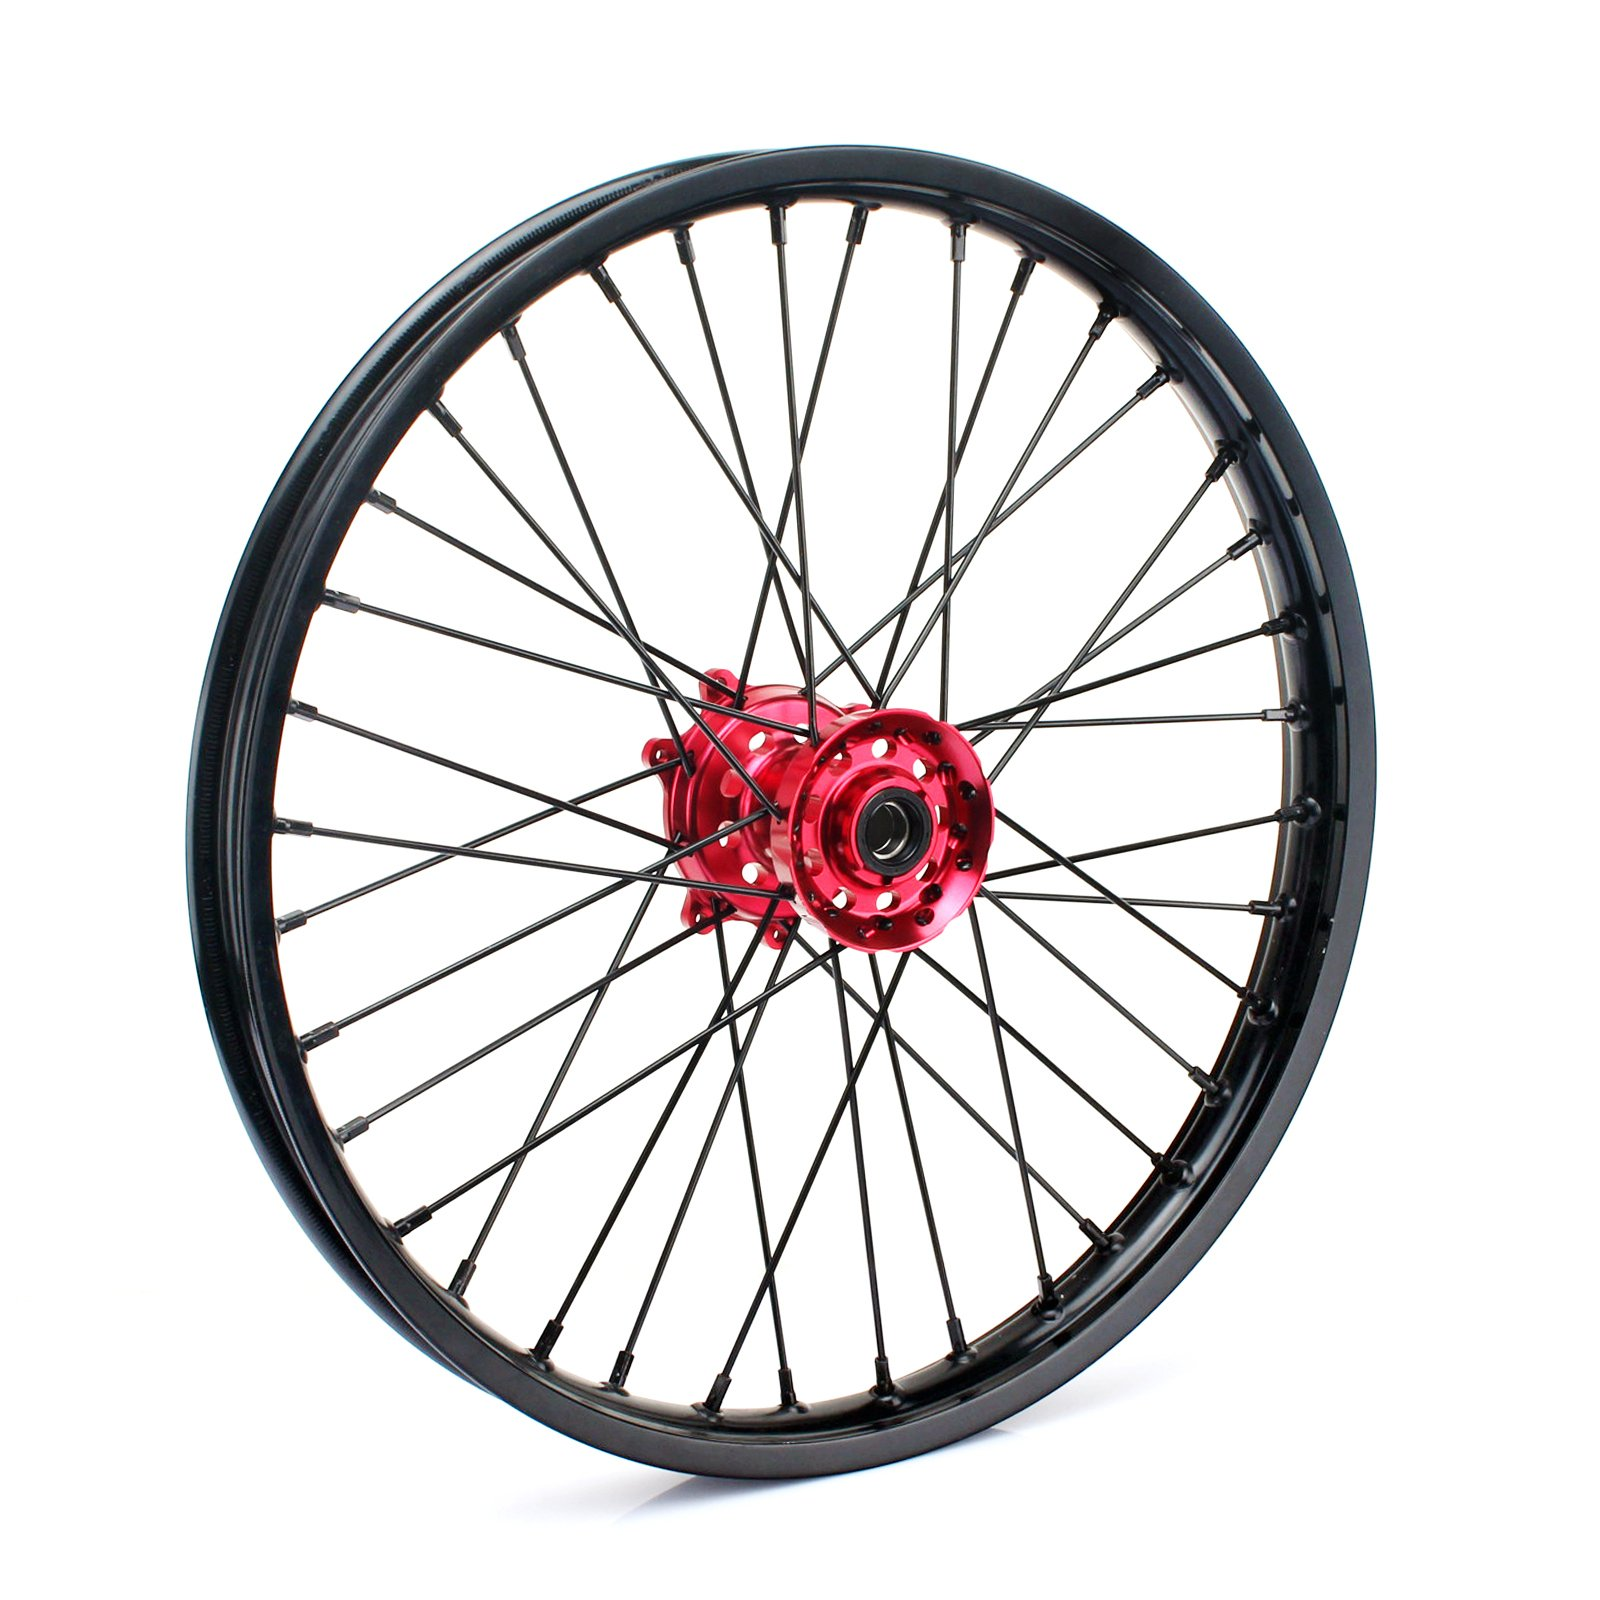 TARAZON 21'' Off-road Front Complete Wheel Set Rim Spokes Red Hub for Honda CRF250R 2004-2017 CRF450R 2002-2016